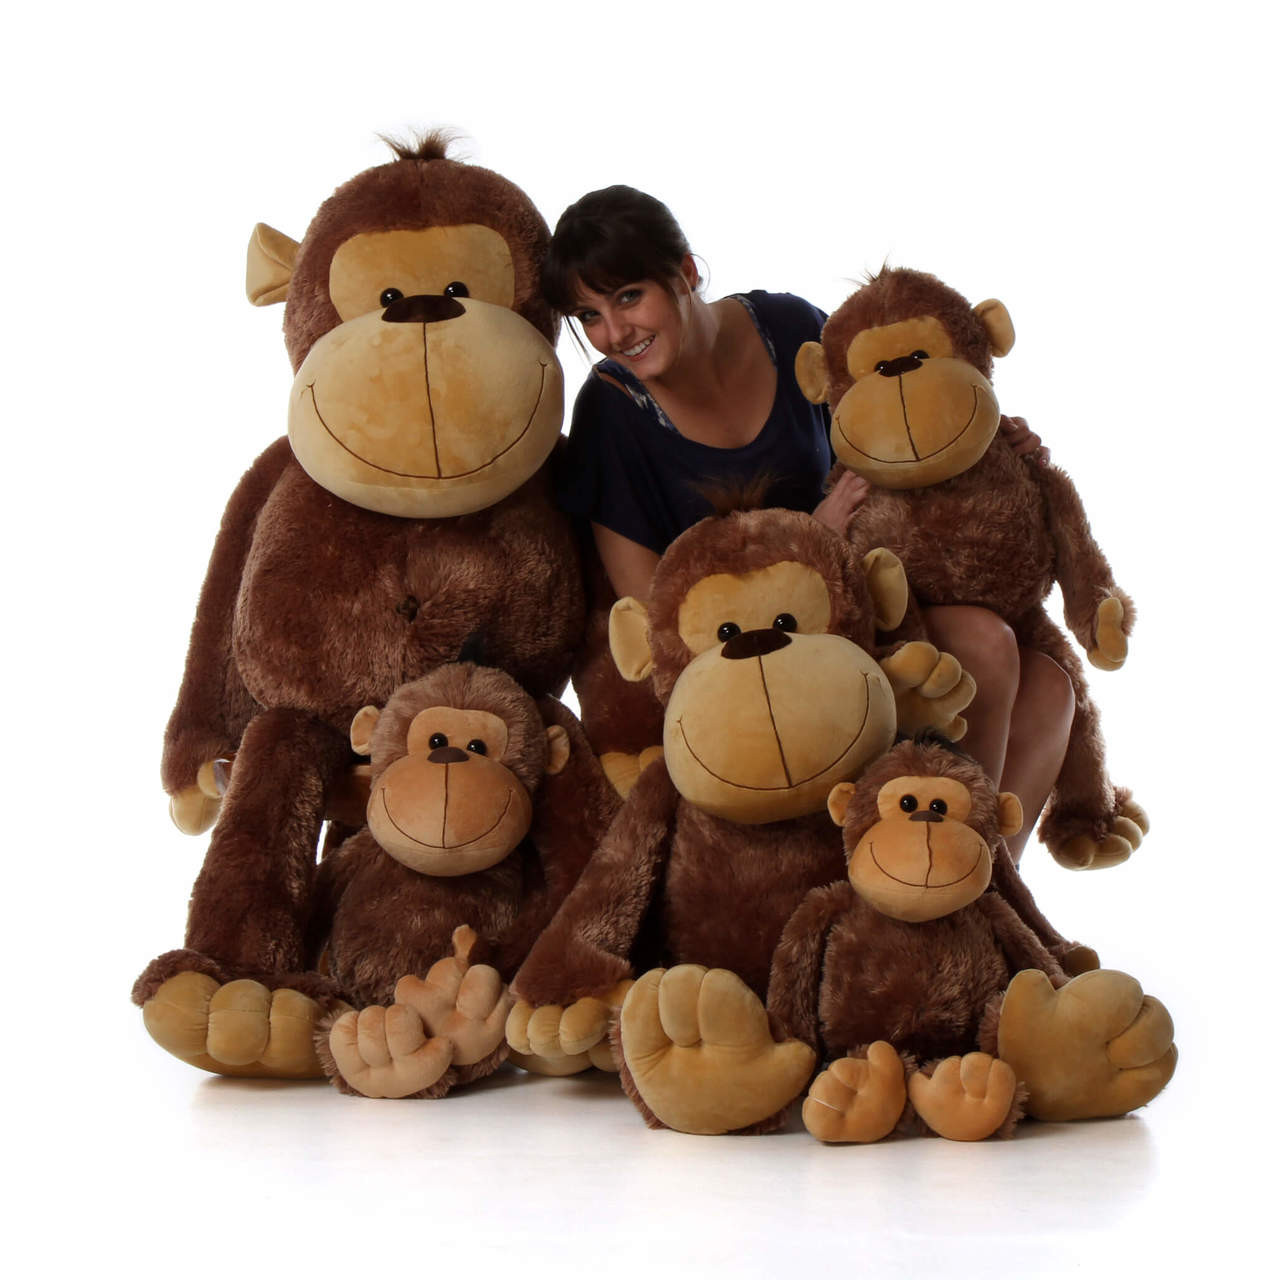 Big Stuffed Monkeys family Giant Teddy brand